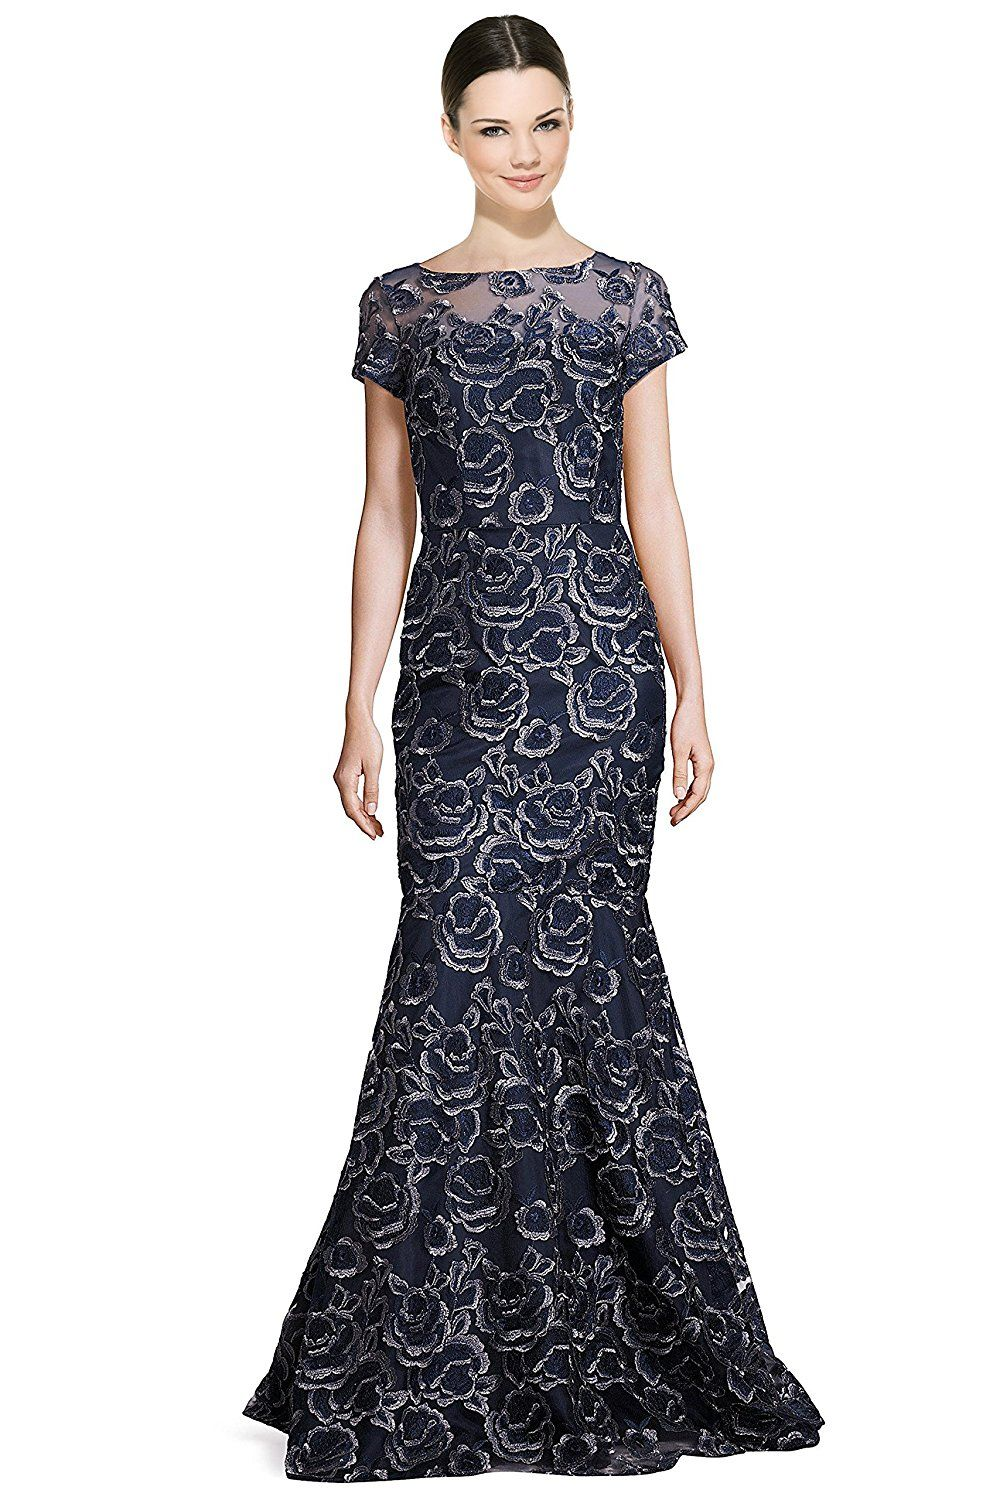 David meister embroidered lace illusion mermaid evening gown dress